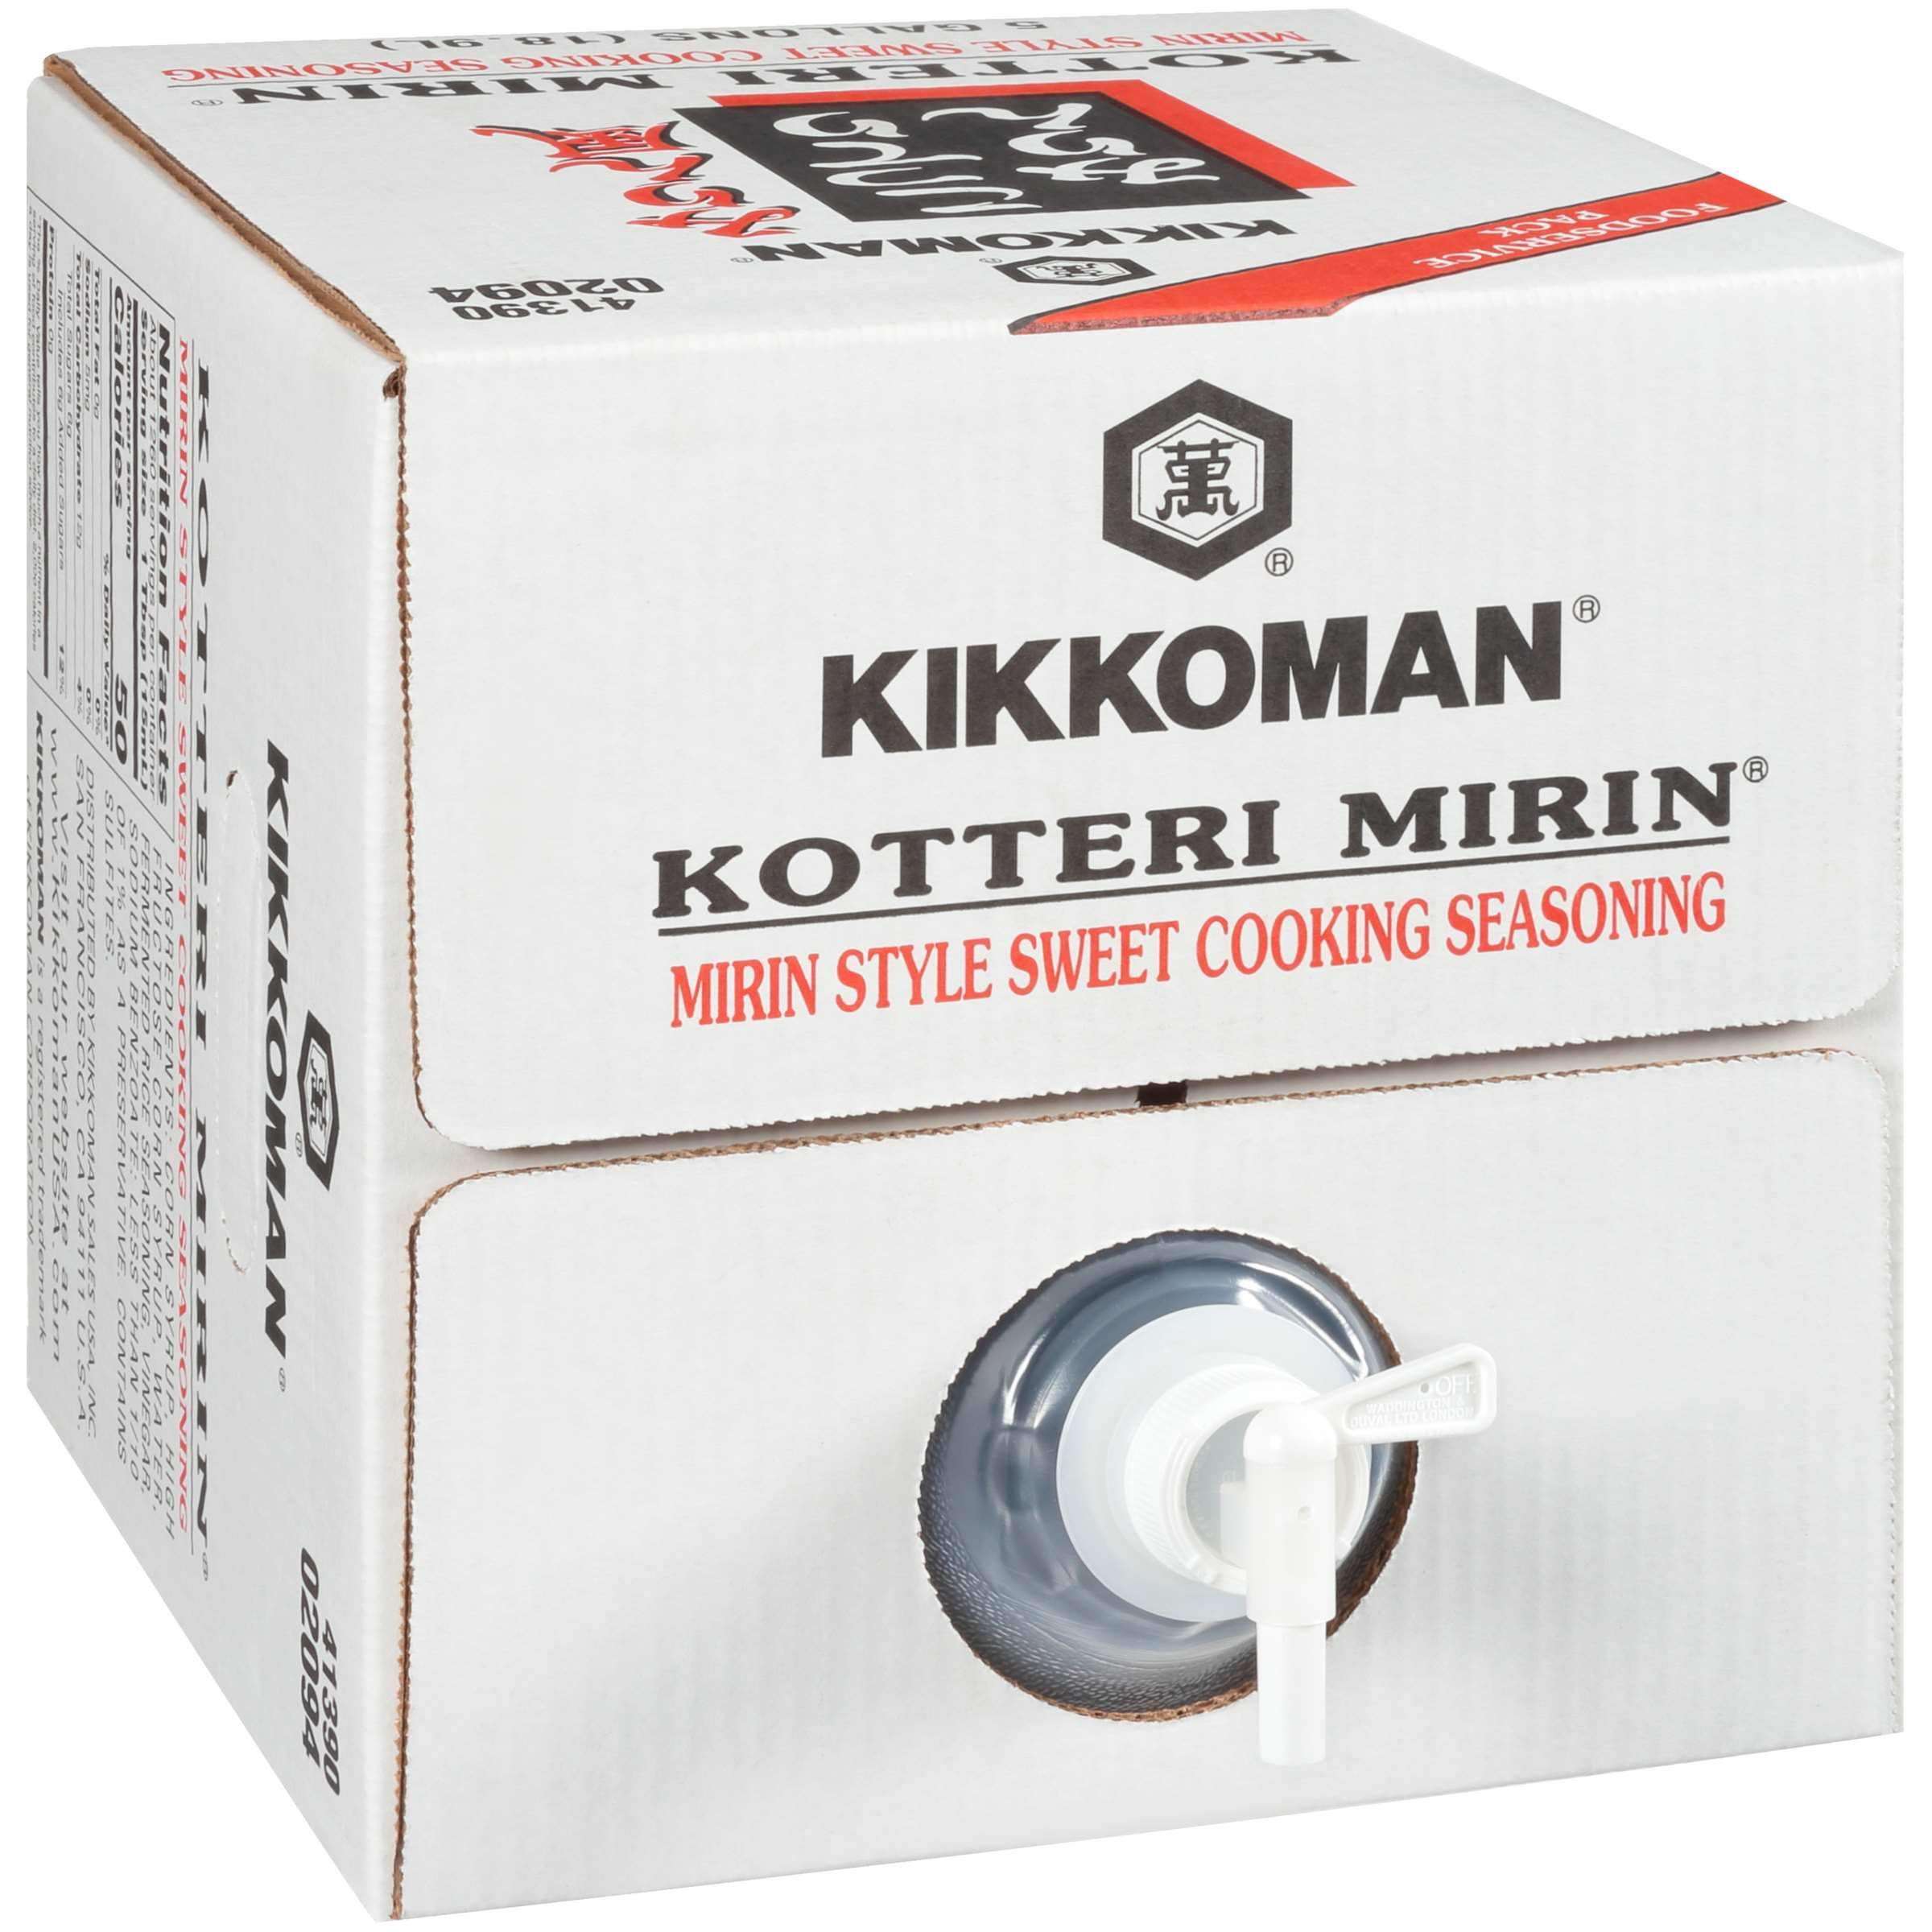 Kikkoman Sweet Cooking Rice Seasoning Kikkoman Kotteri Mirin 5 Gallon